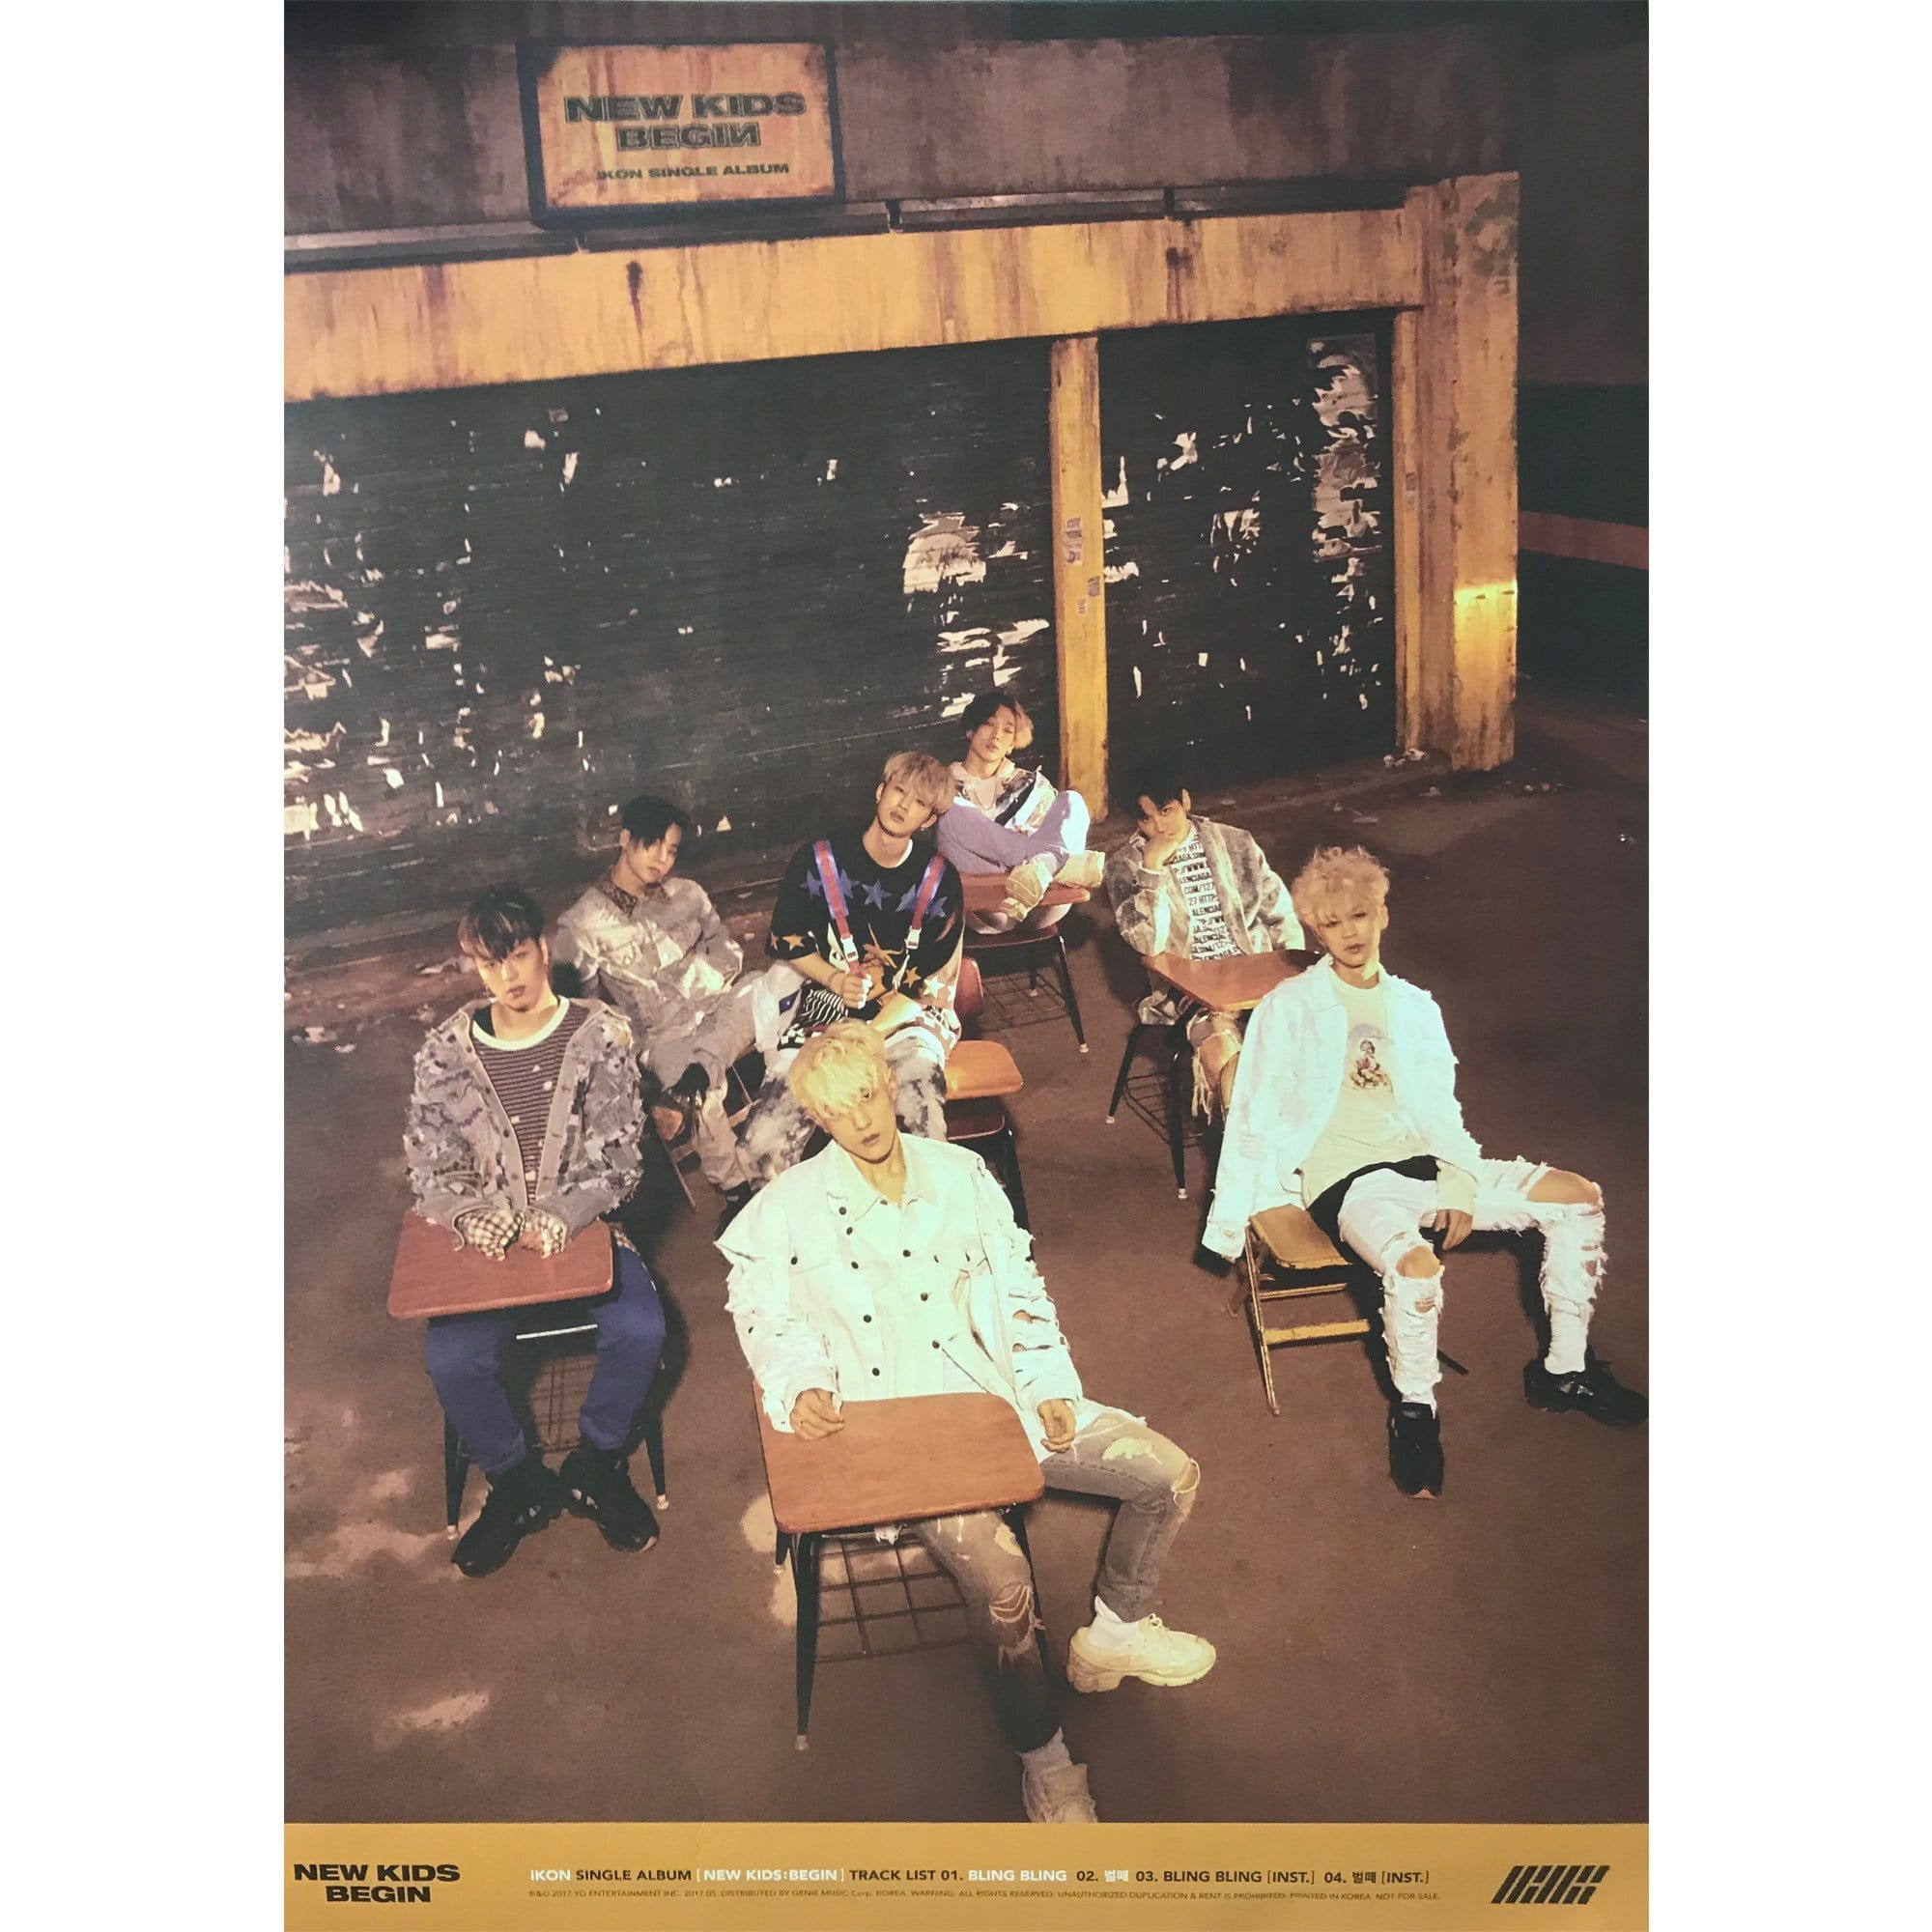 ikon | 아이콘 | Single album [ NEW KIDS : BEGIN ] | double-sided | POSTER